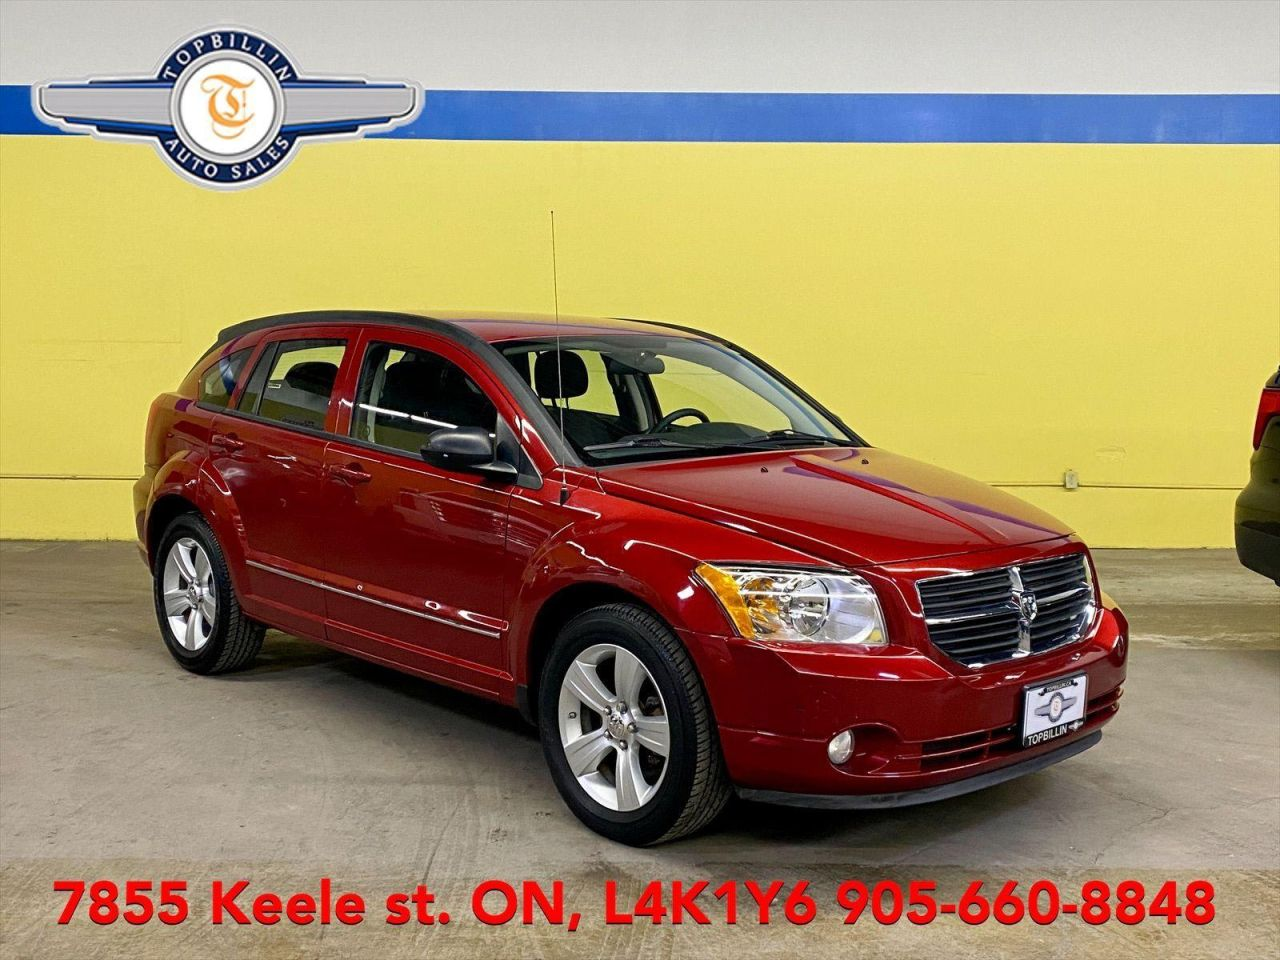 2010 Dodge Caliber SXT Only 118K, 1 Owner, 2 Years Warranty